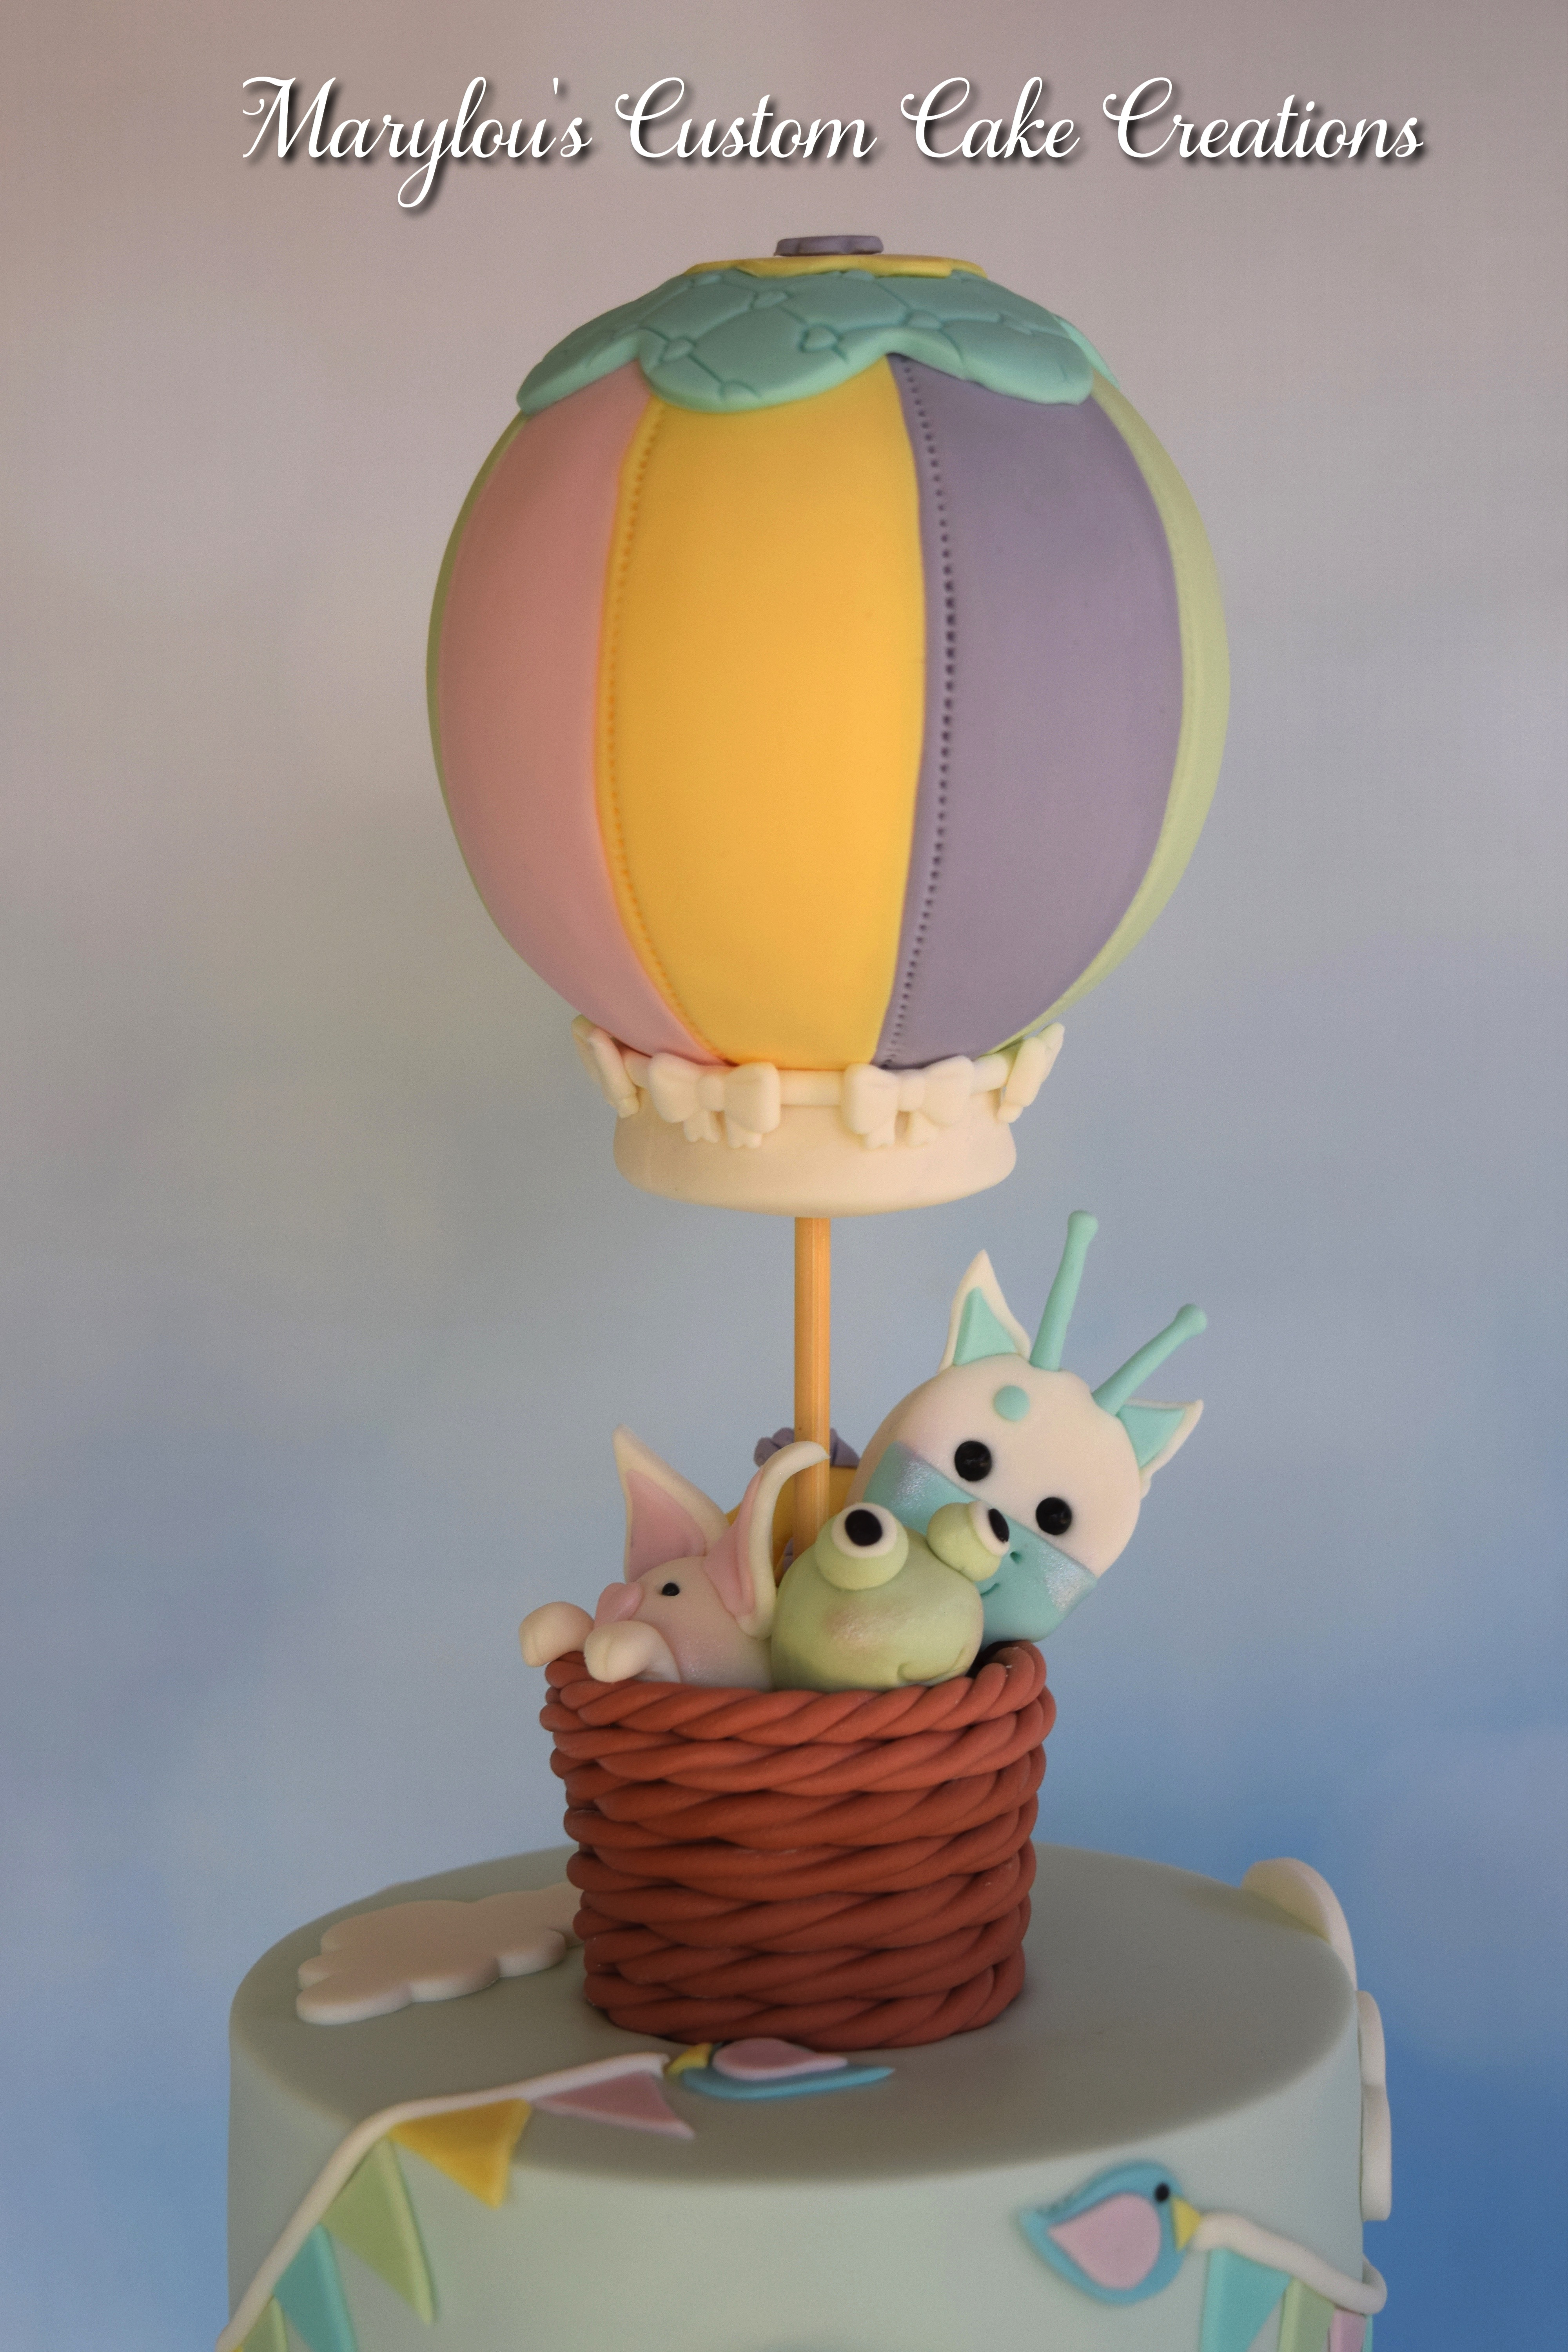 Marylou's Custom Cake Creations-3